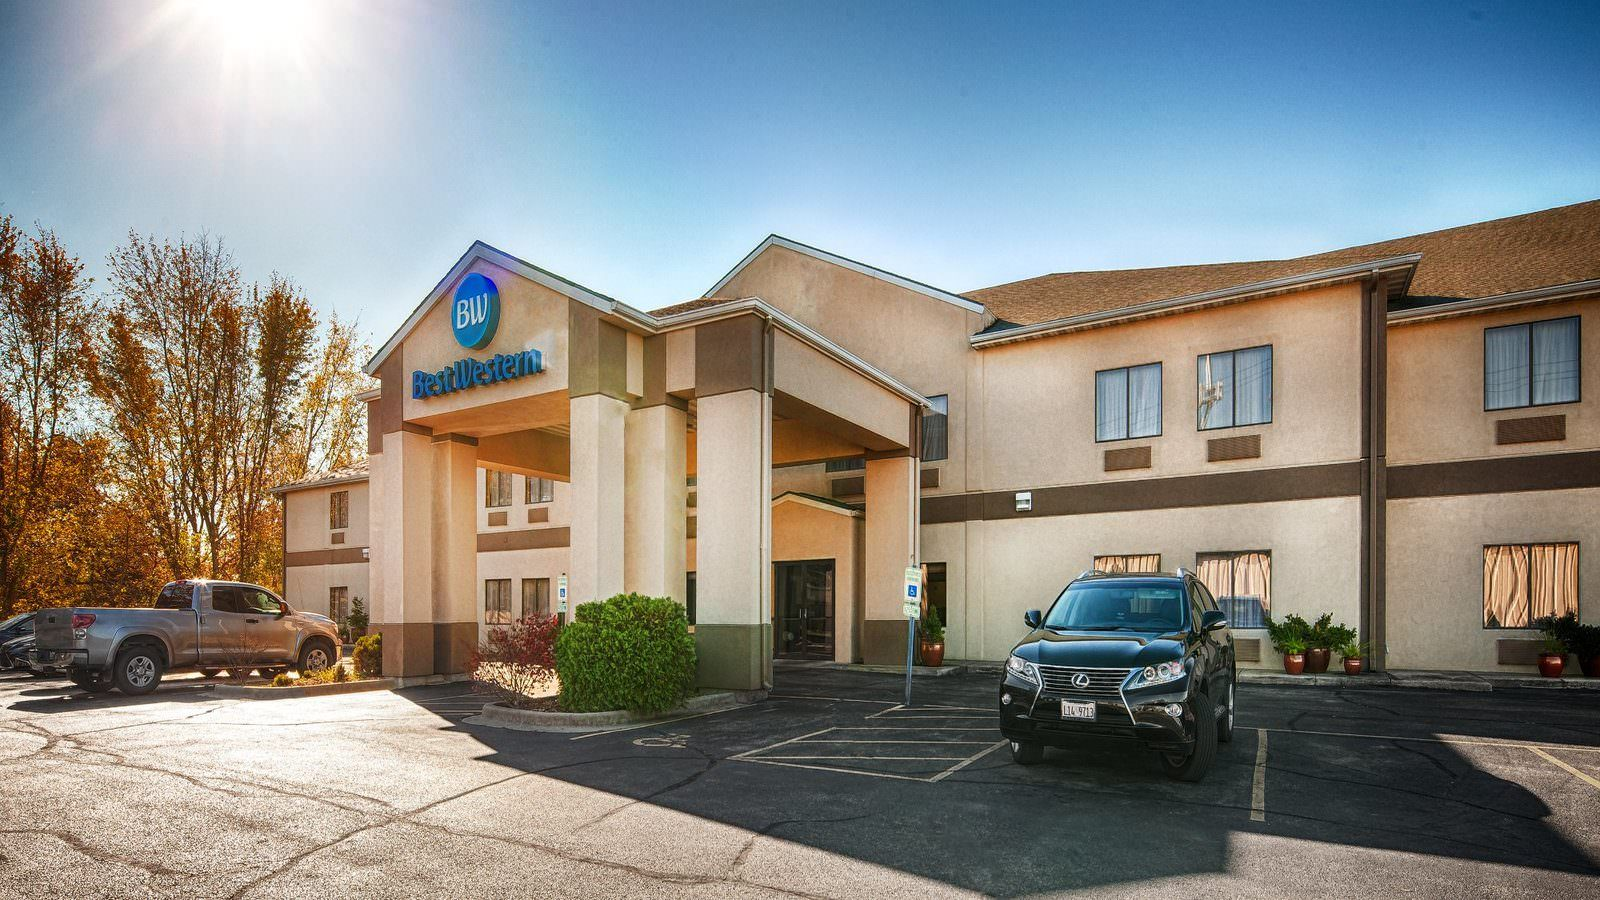 Ultimate List of Best Luxury Hotels in Springfield City, Illinois, Best Western Clearlake Plaza